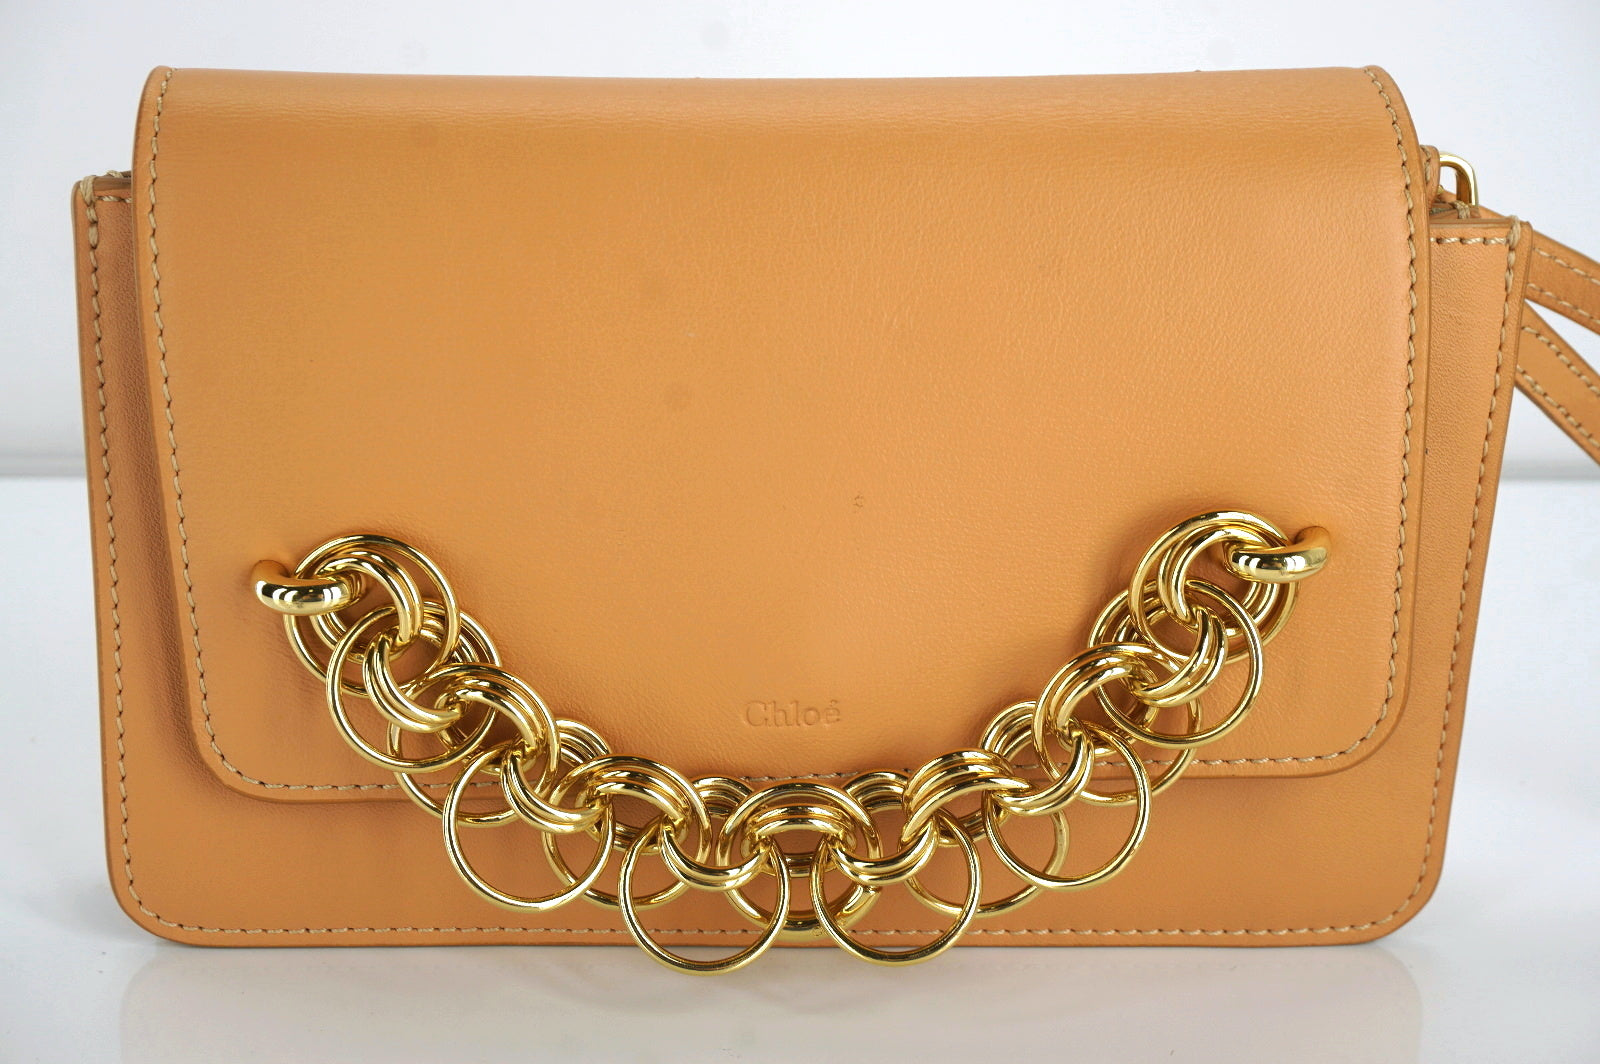 Chloe Leather Mini Drew Bijou Crossbody Gold Chain Shoulder Bag NWT $1150 Clutch